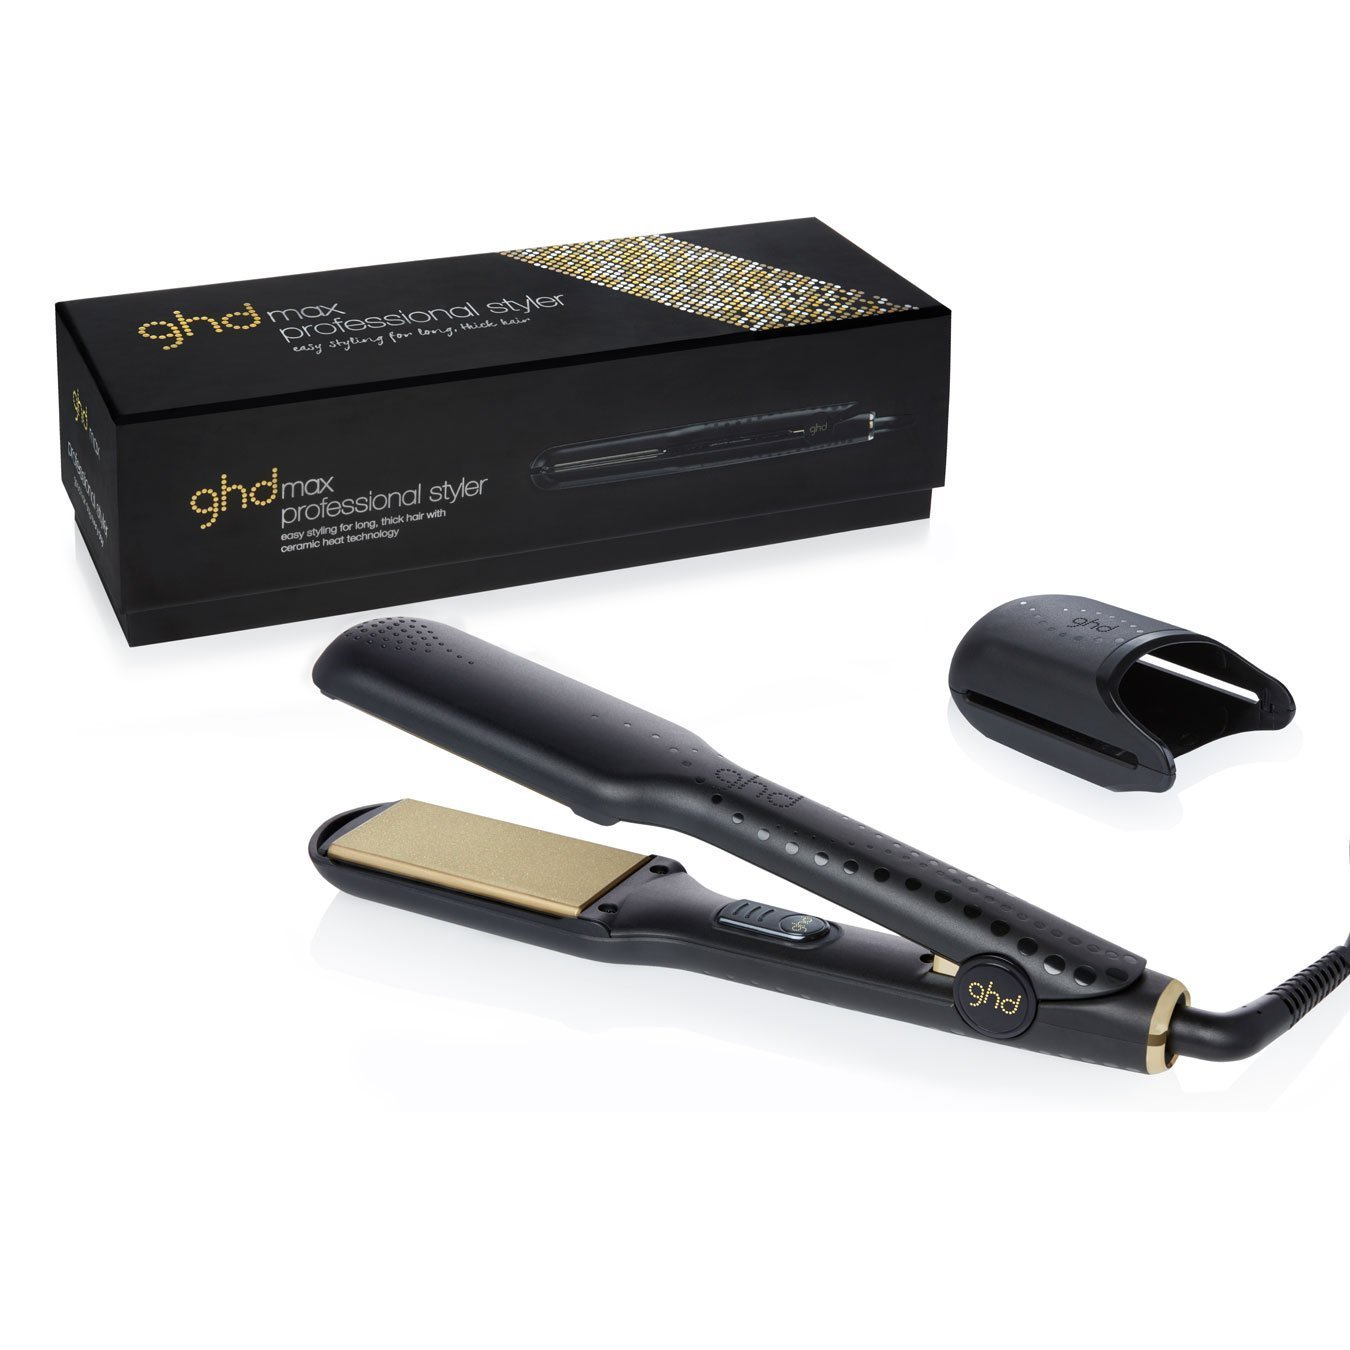 ghd V® max professional styler (discontinued 2013 model)